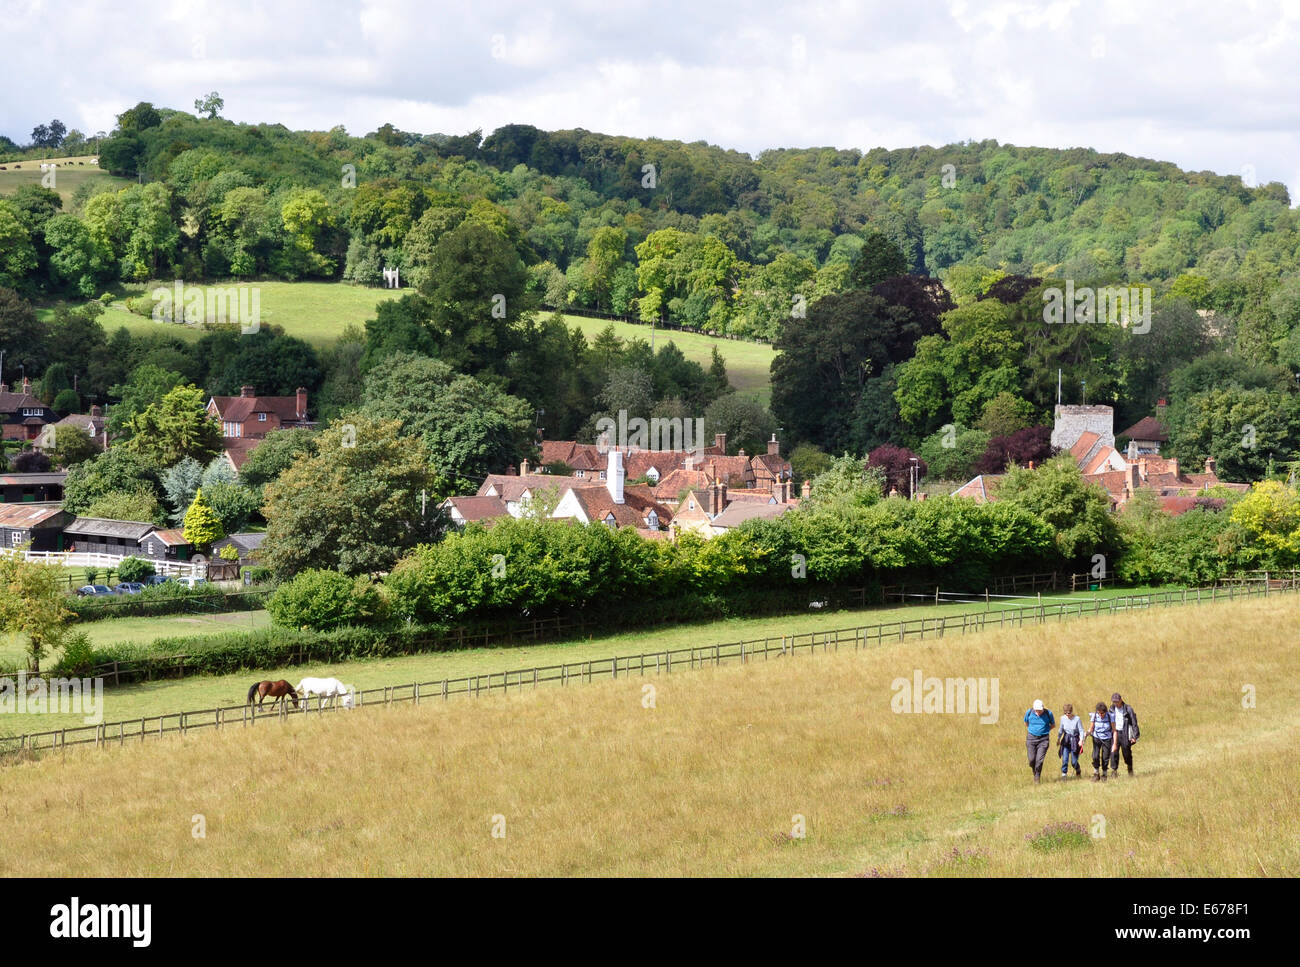 Bucks - Chiltern Hills - Turville - meadow foreground -  walkers - cottage rooftops - church tower - wooded hills - Stock Image